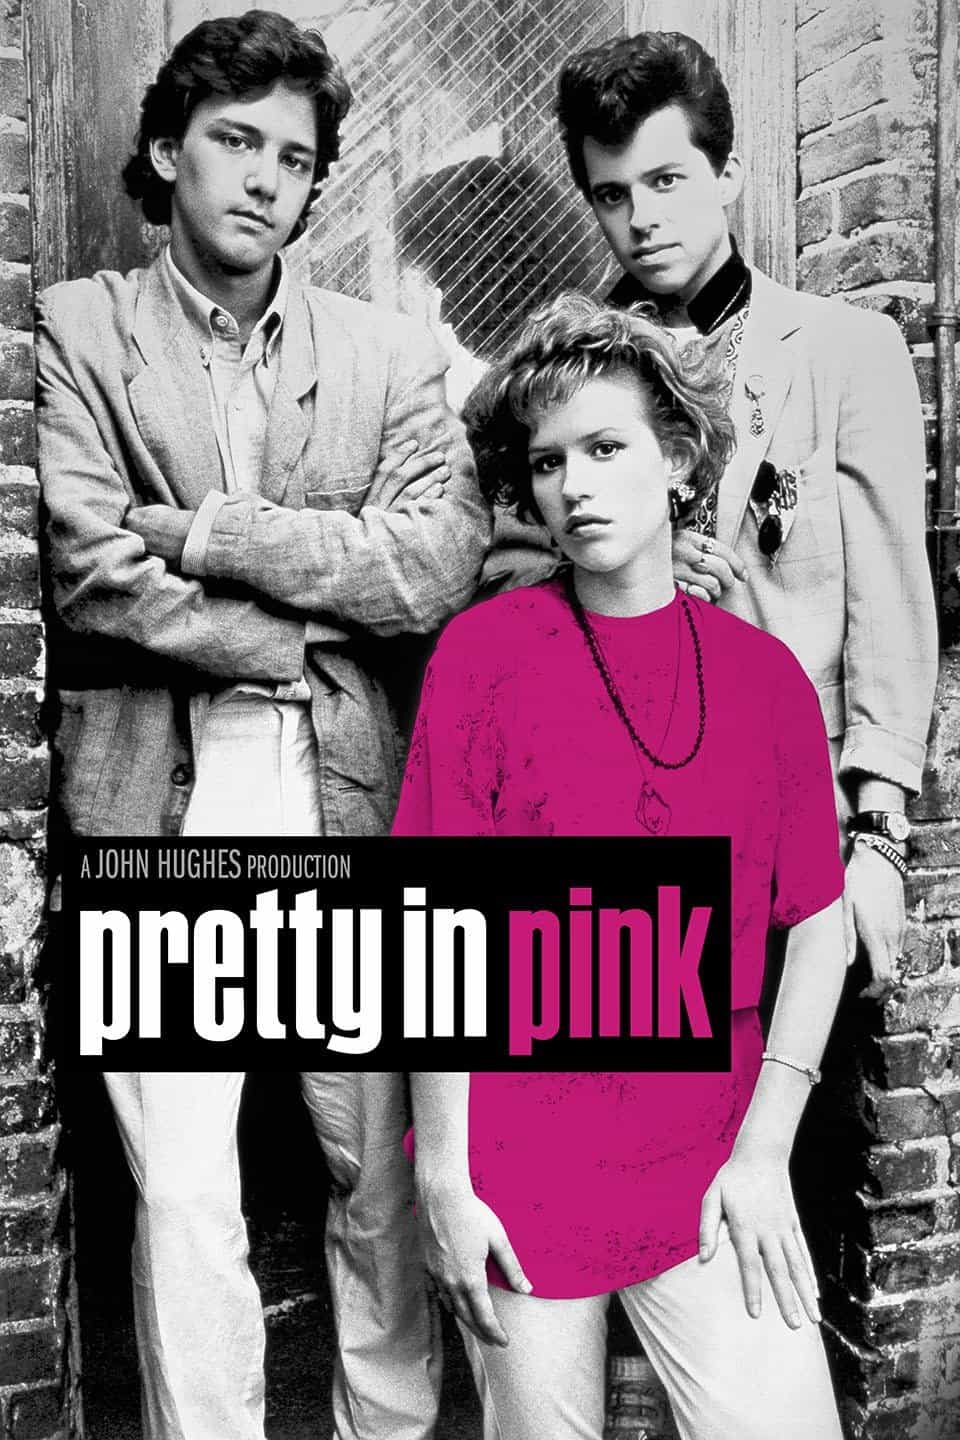 Pretty in pink gets anally pounded 8